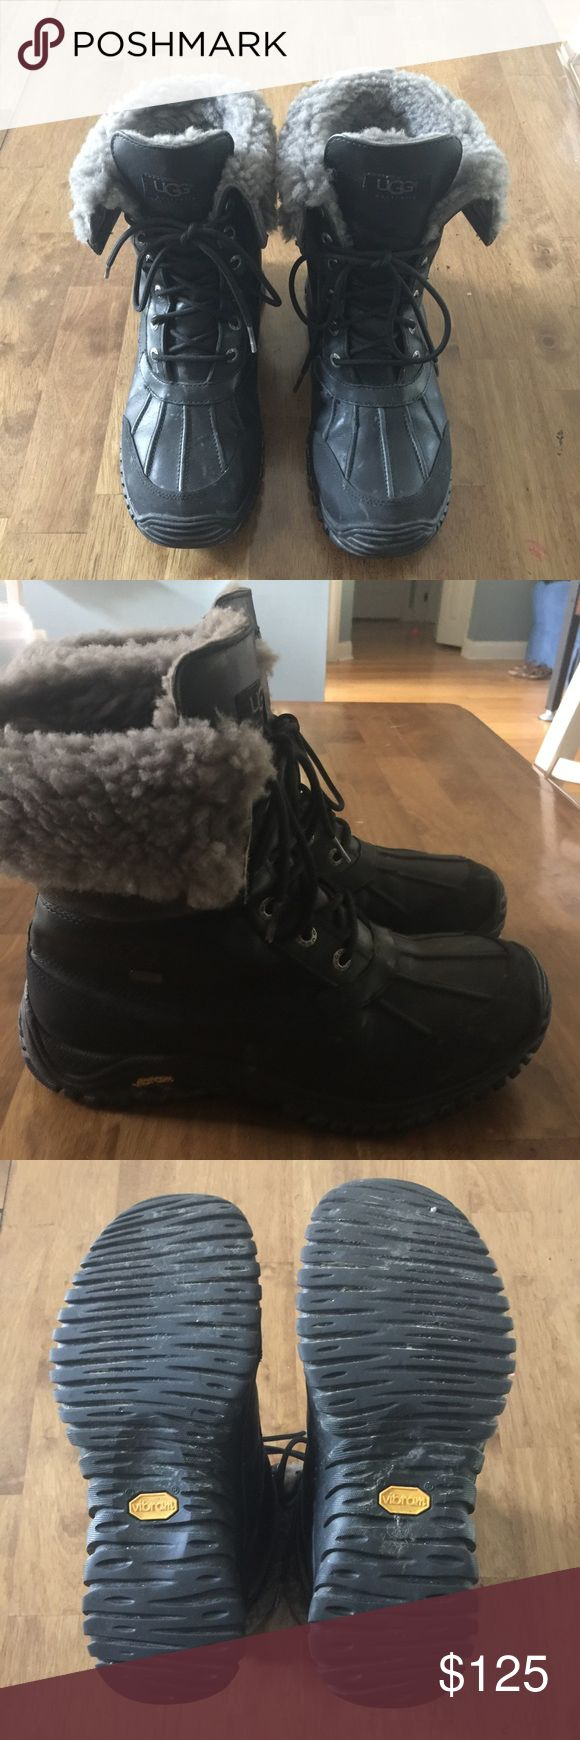 UGG Vibram Snow/Winter Boots Excellent Used Condition! I got these for my Vermont trip back in December! Unfortunately I live in Florida so I don't get the opportunity to wear these amazing shoes very often! UGG makes THE BEST winter shoes ever! Sad to see these go! Retail $275 + Tax! Price is firm! :) UGG Shoes Winter & Rain Boots